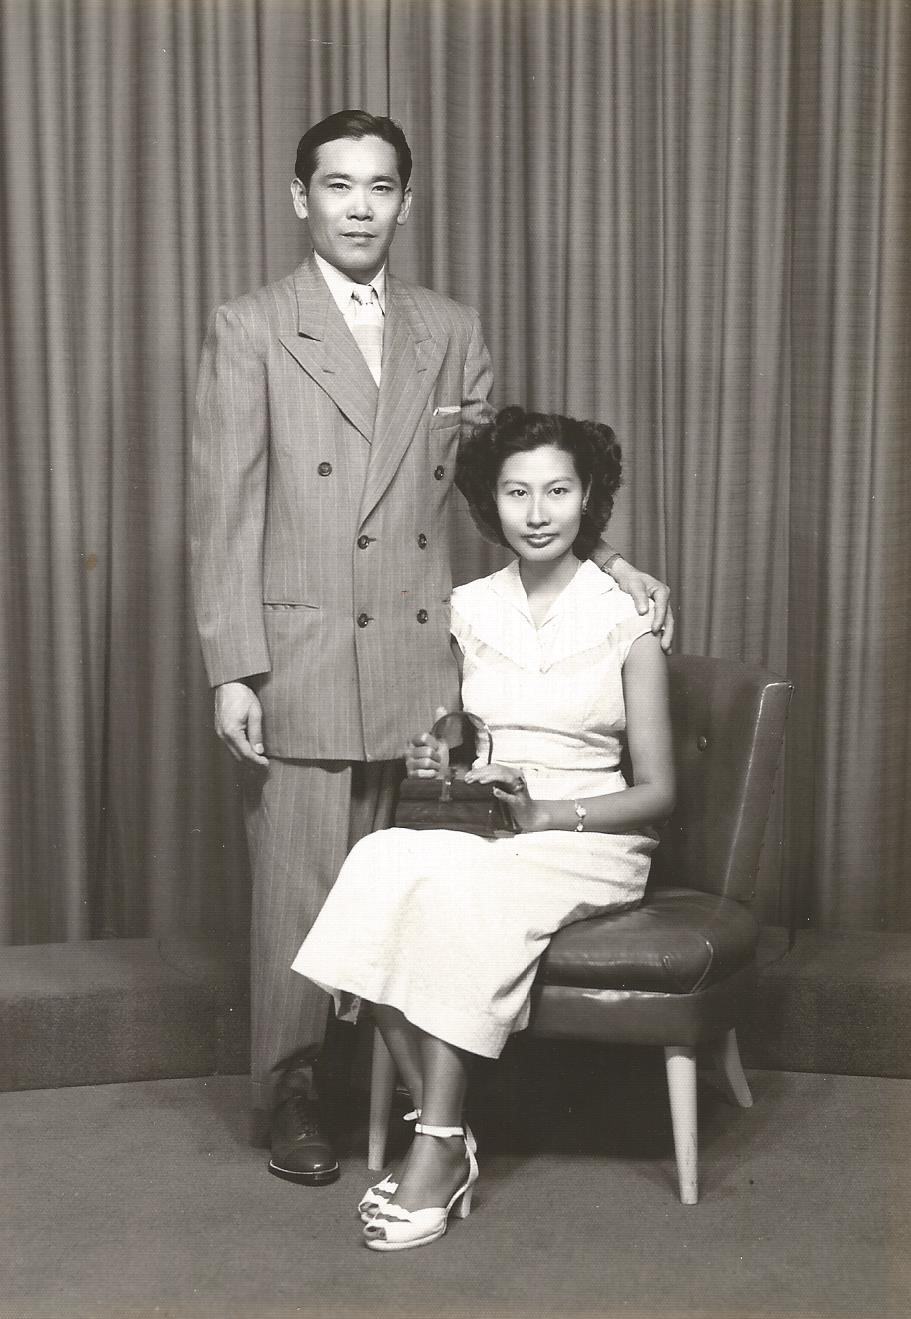 My maternal grandparents, circa 1940s